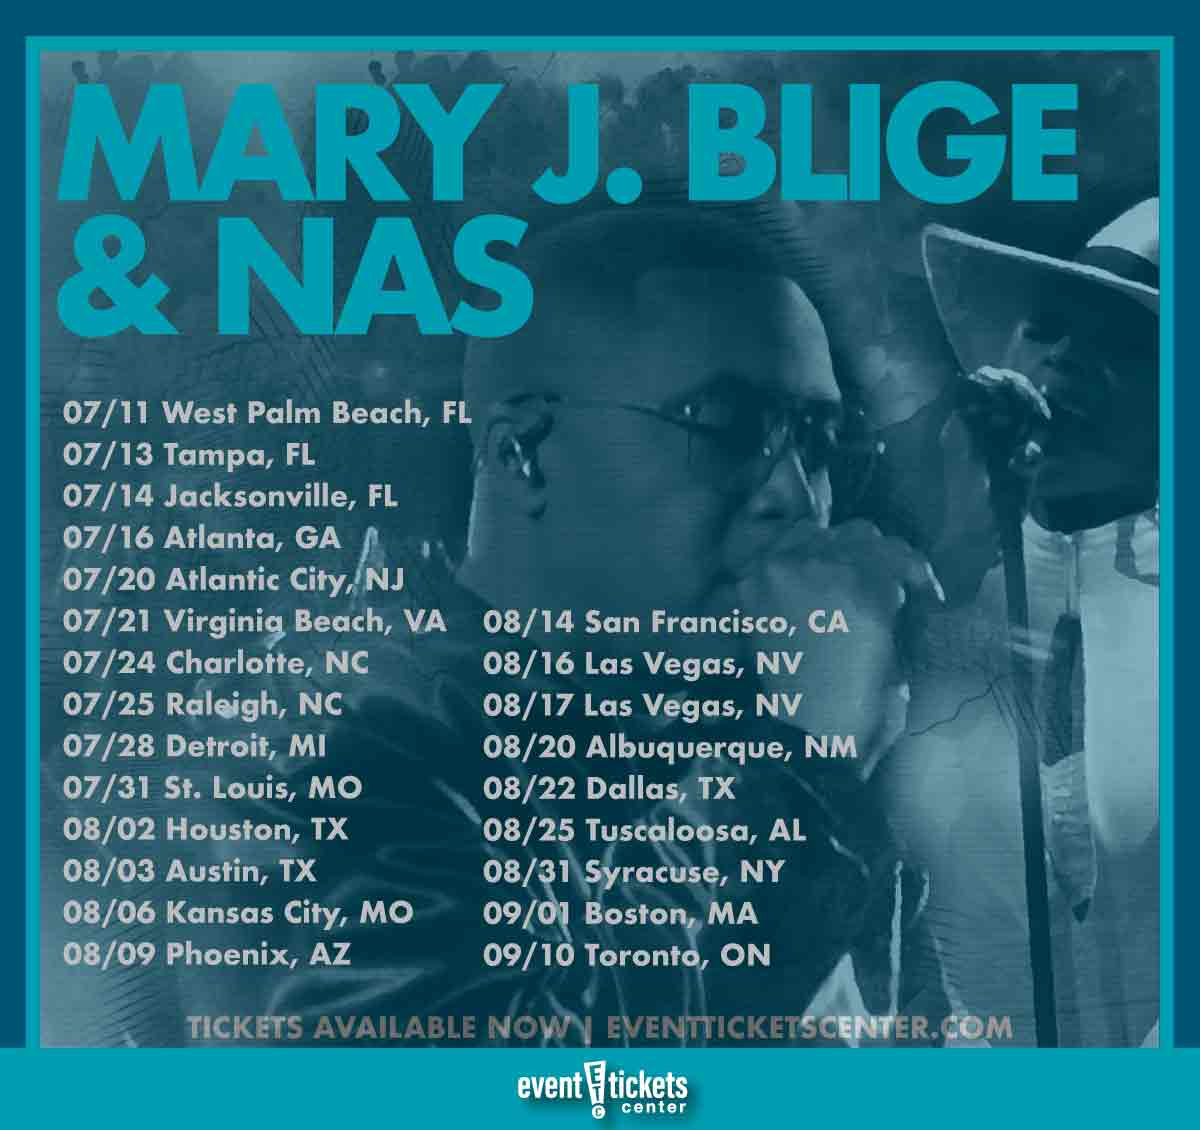 mary j blige and nas tour dates